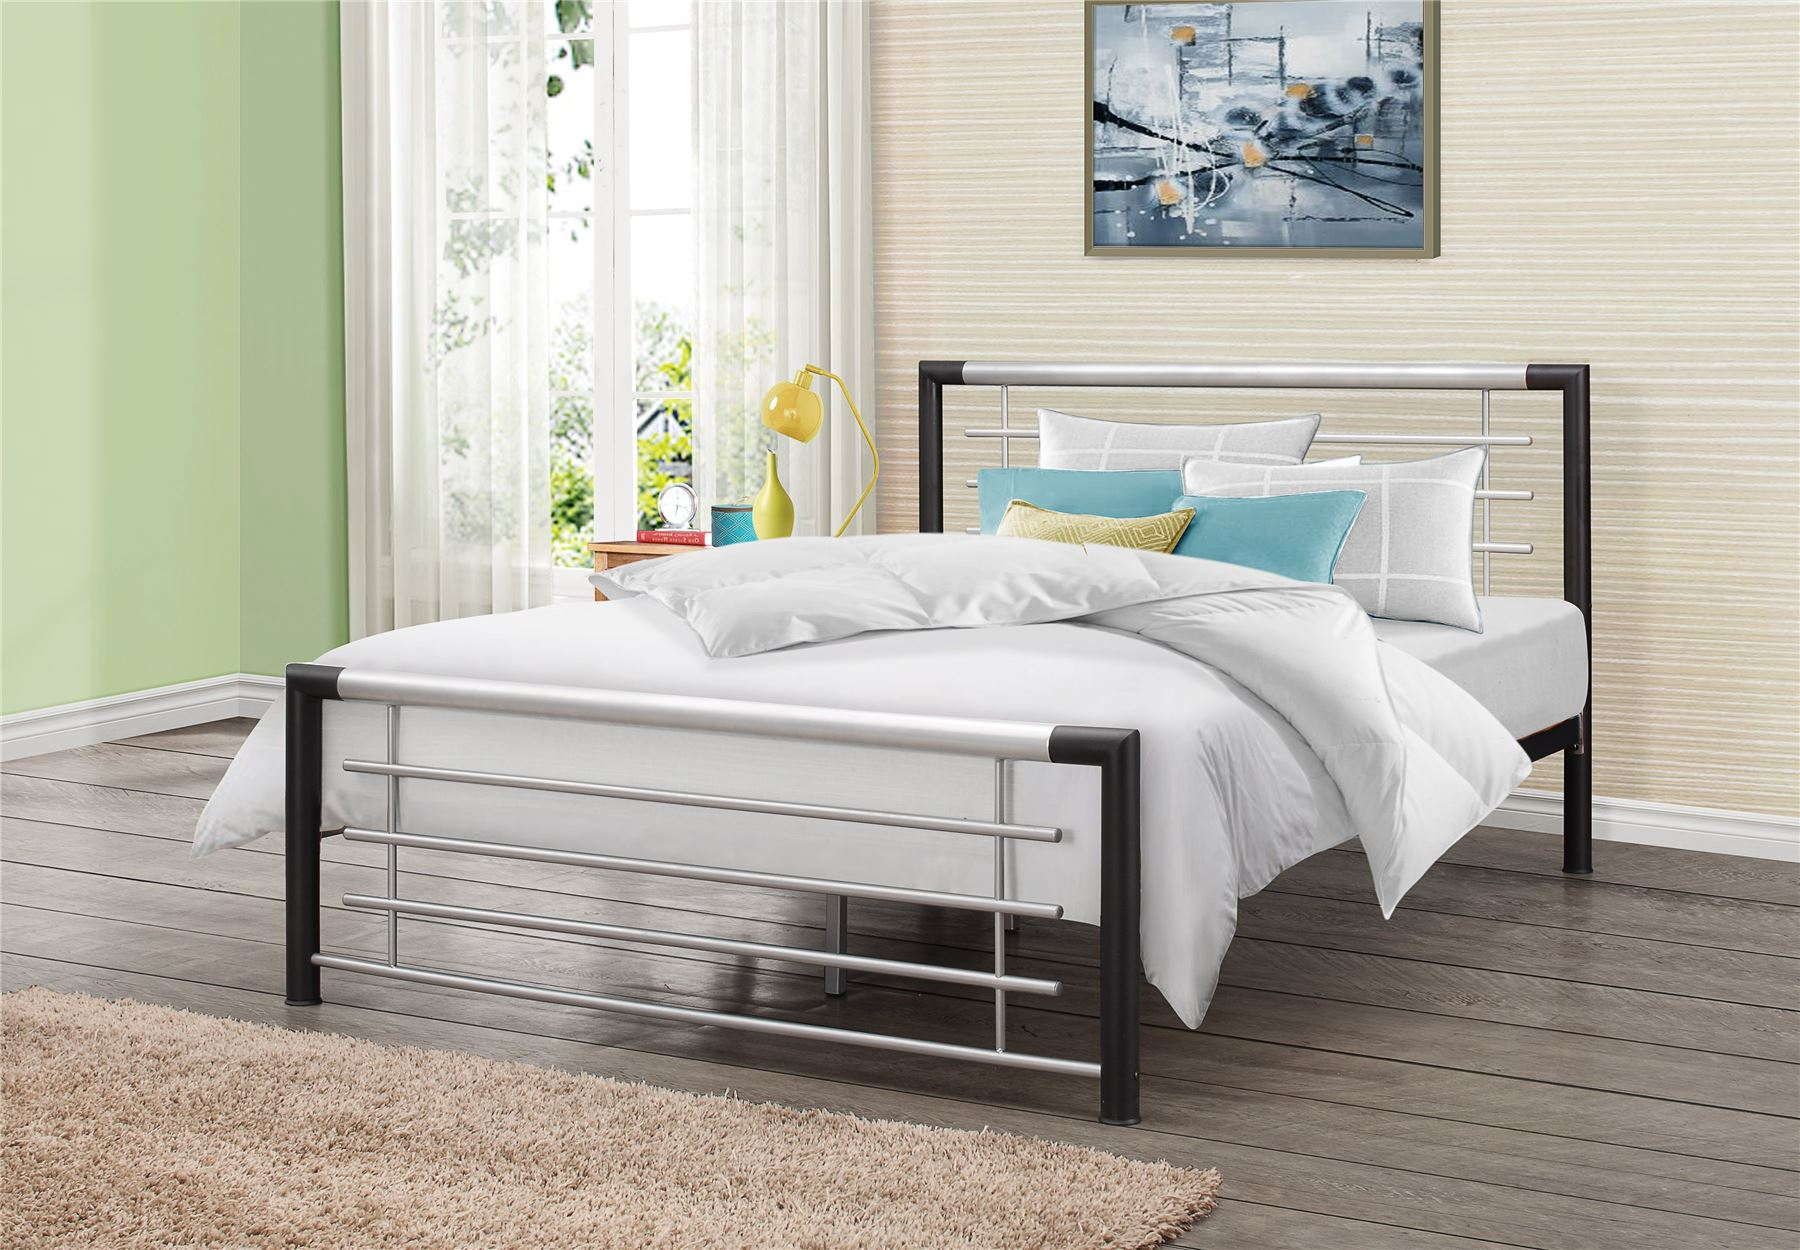 Faro 135cm 4FT6 Double Black & Silver Metal Bed Frame Bedstead Modern